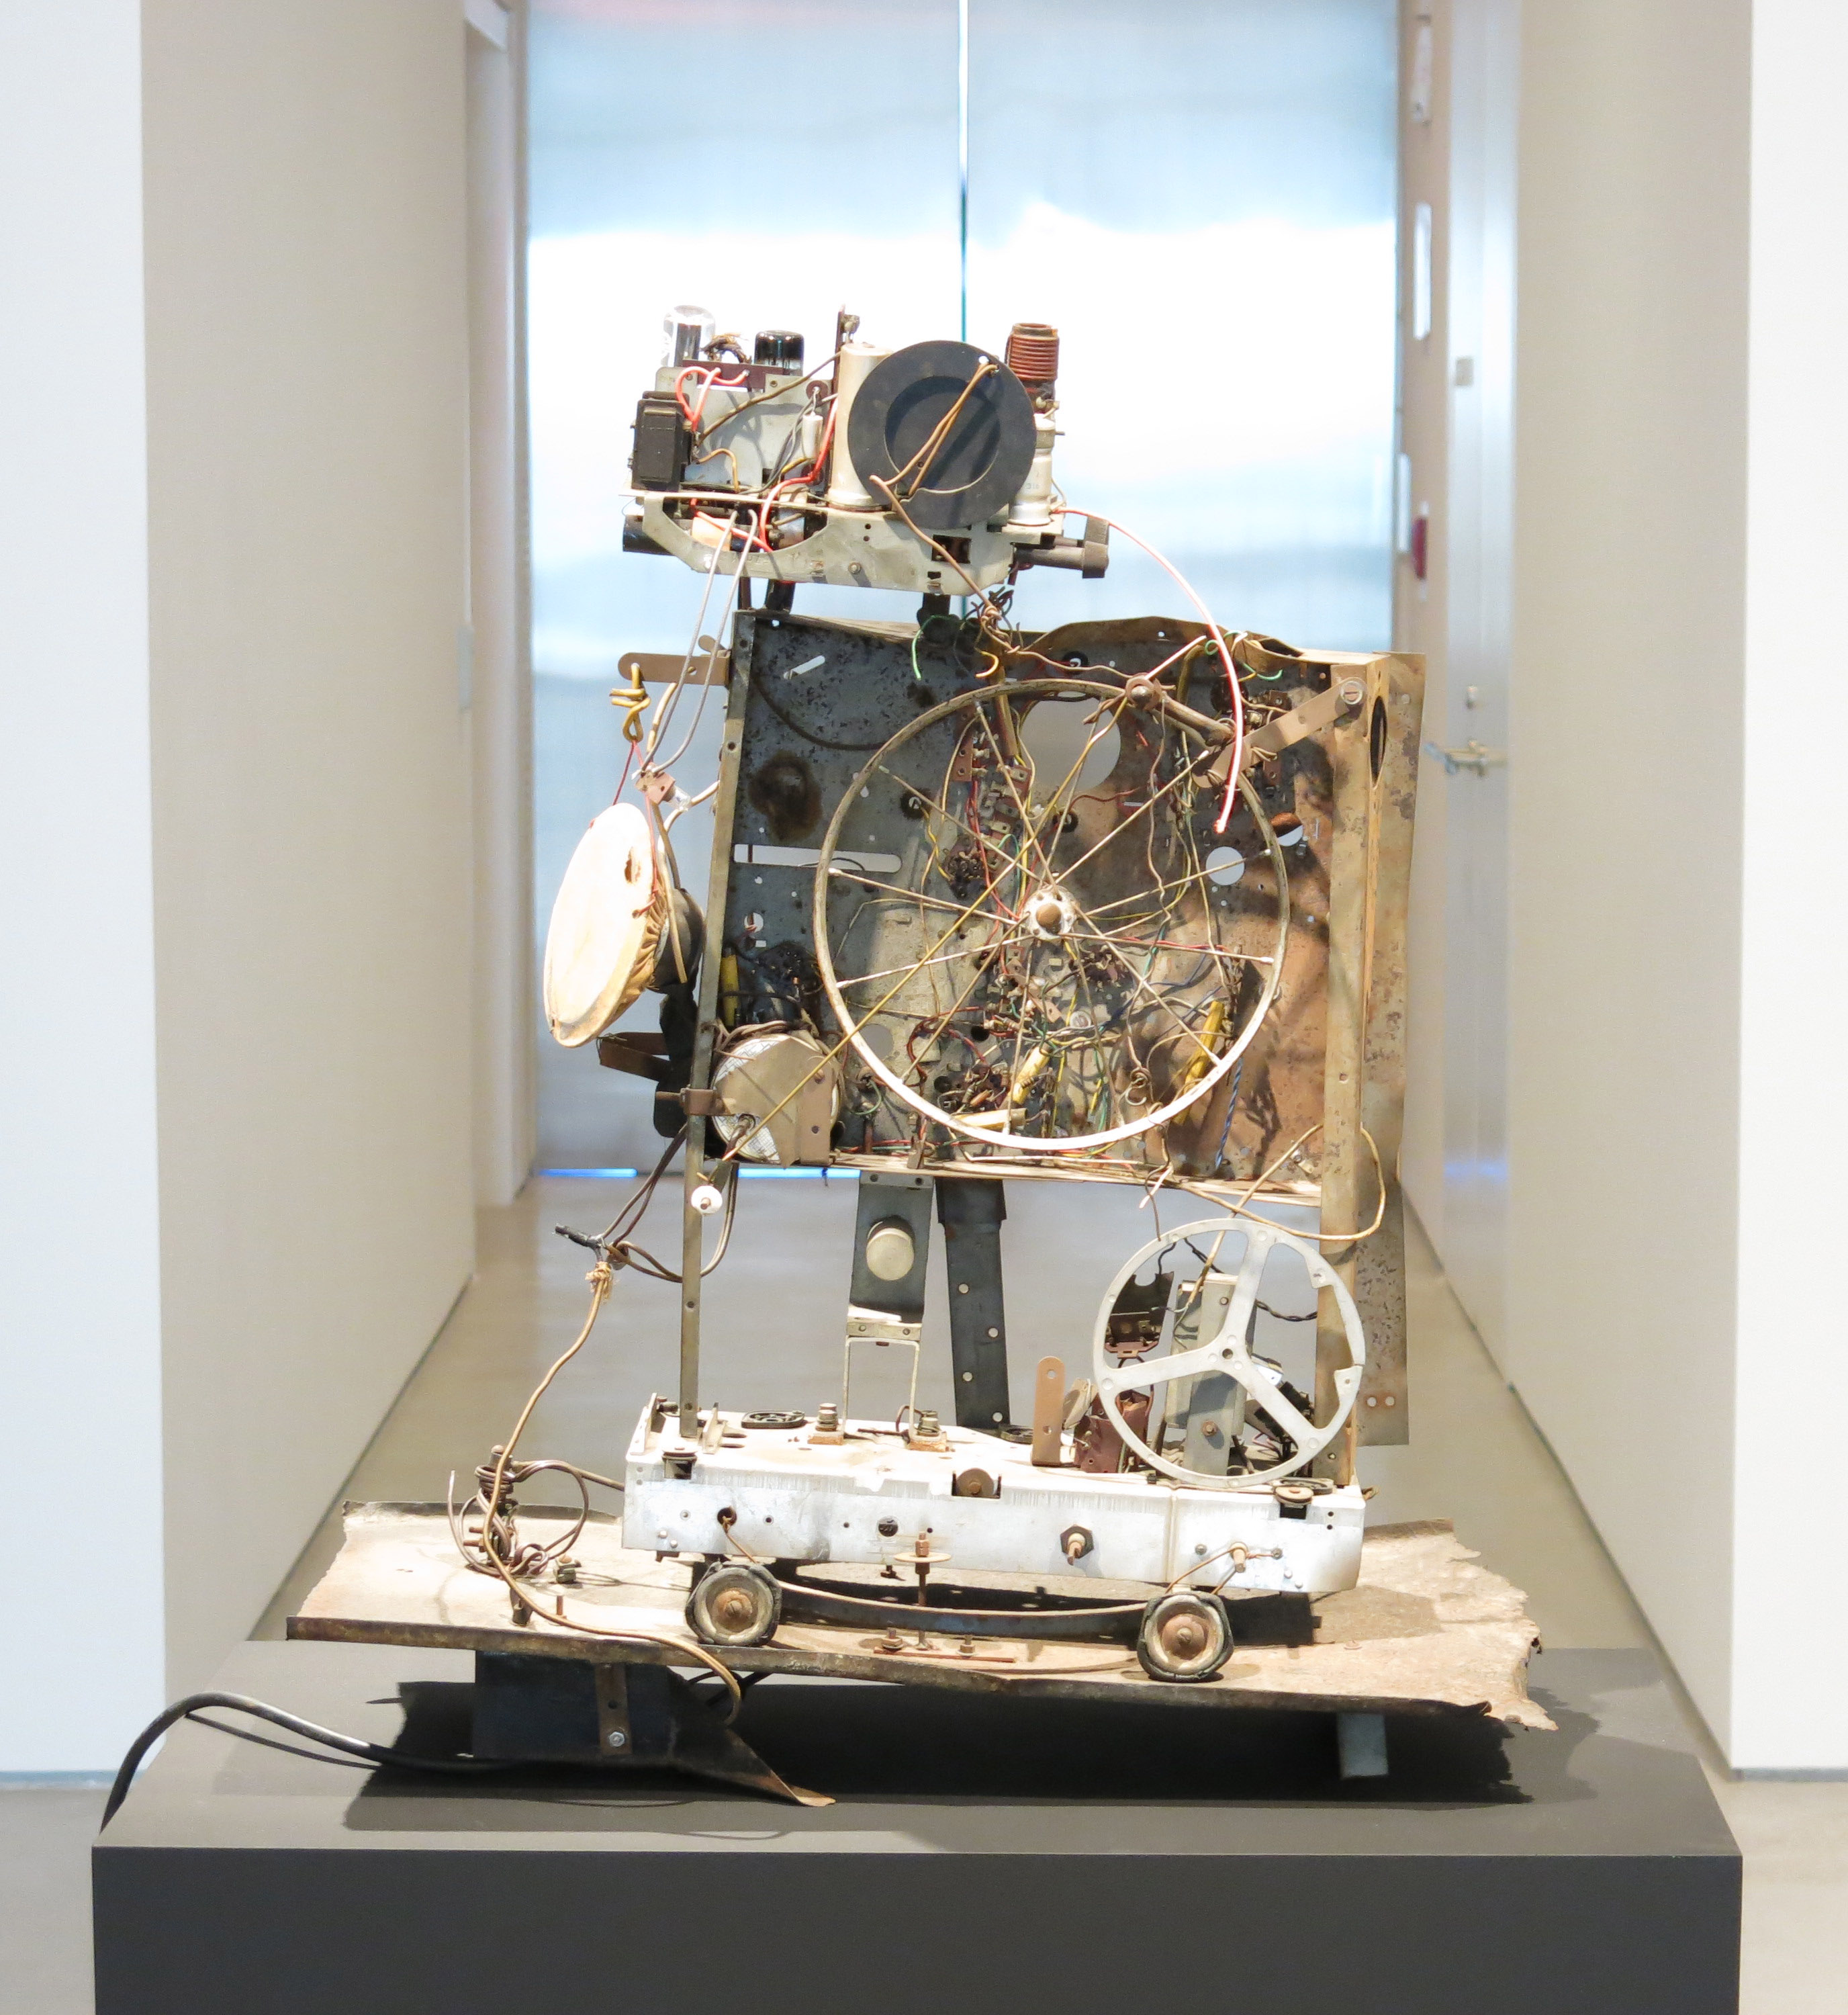 Tinguely's Radio No. 1, via Sperone Westwater